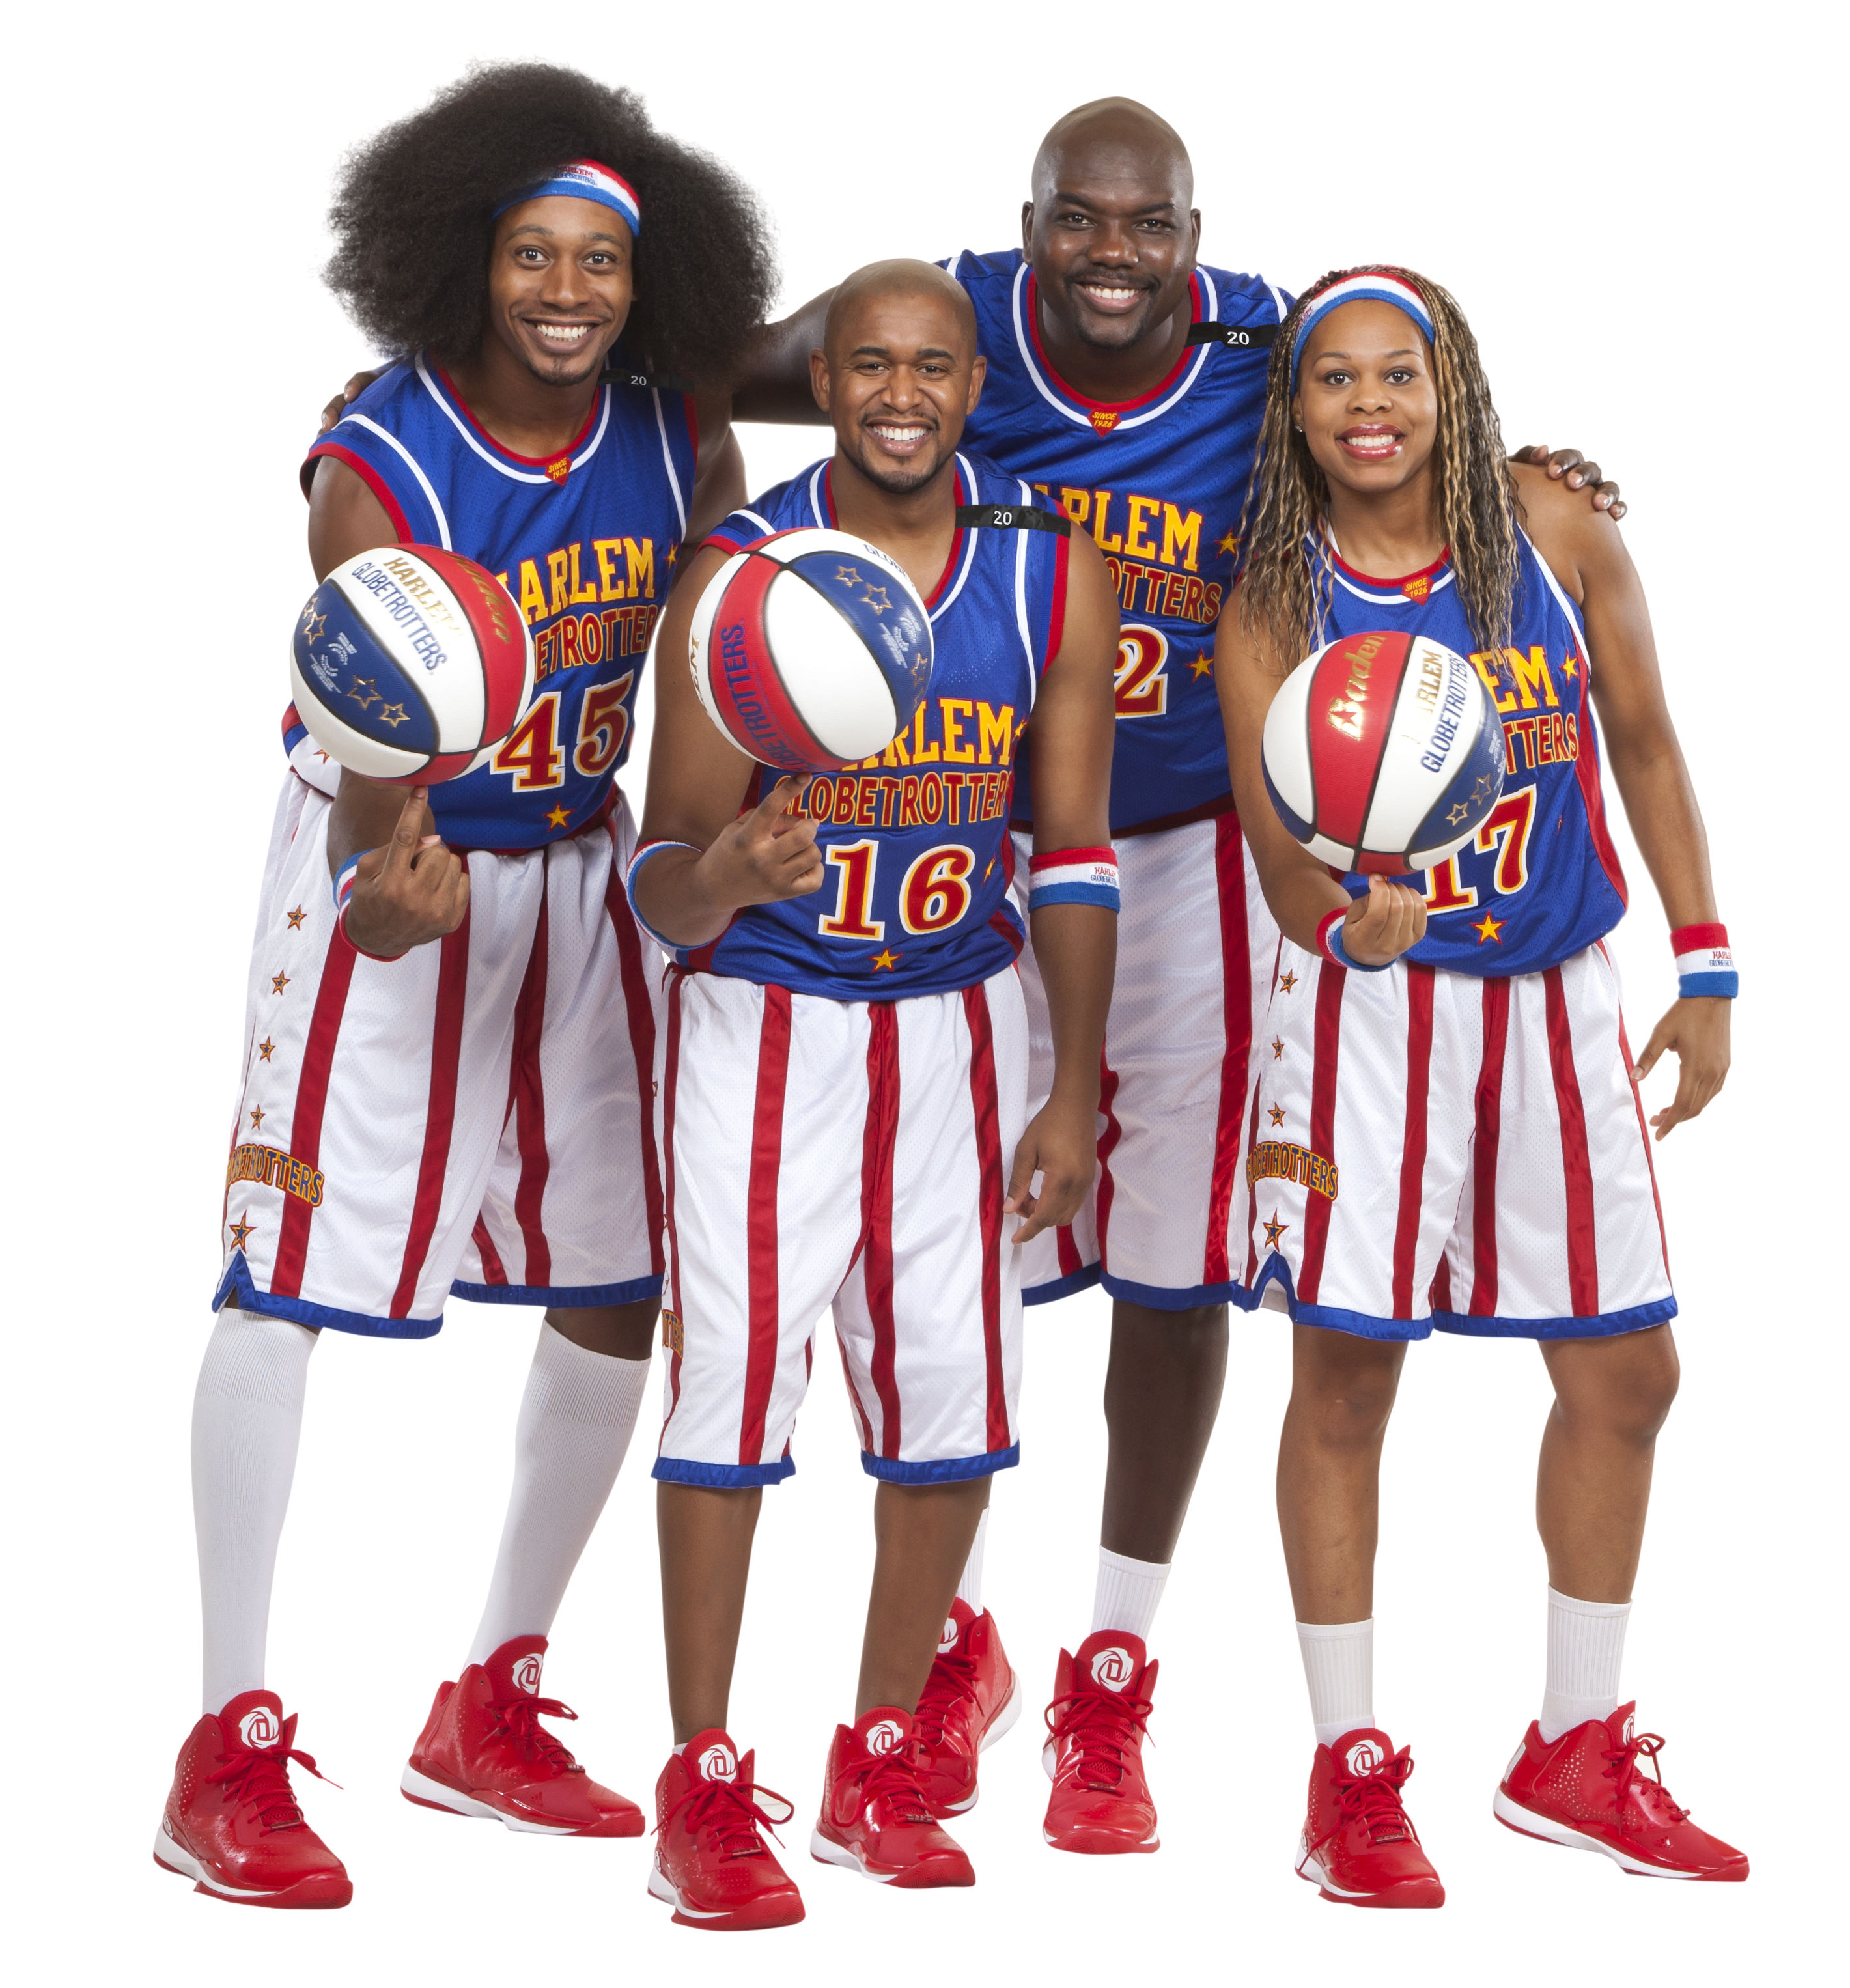 Harlem Globetrotters – Discount and Giveaway